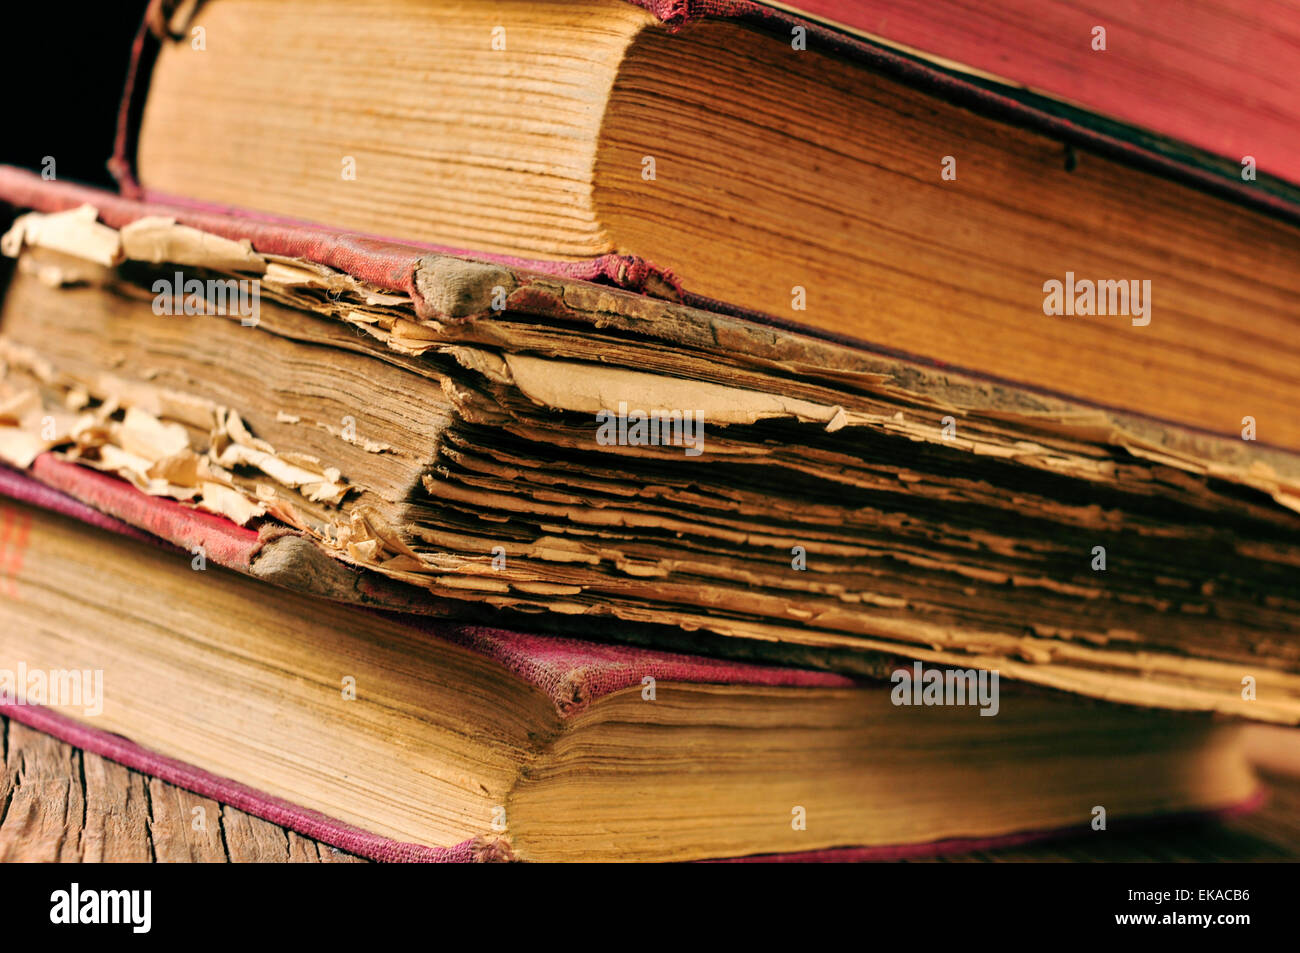 closeup of a pile of worn-out old books on a rustic wooden table - Stock Image